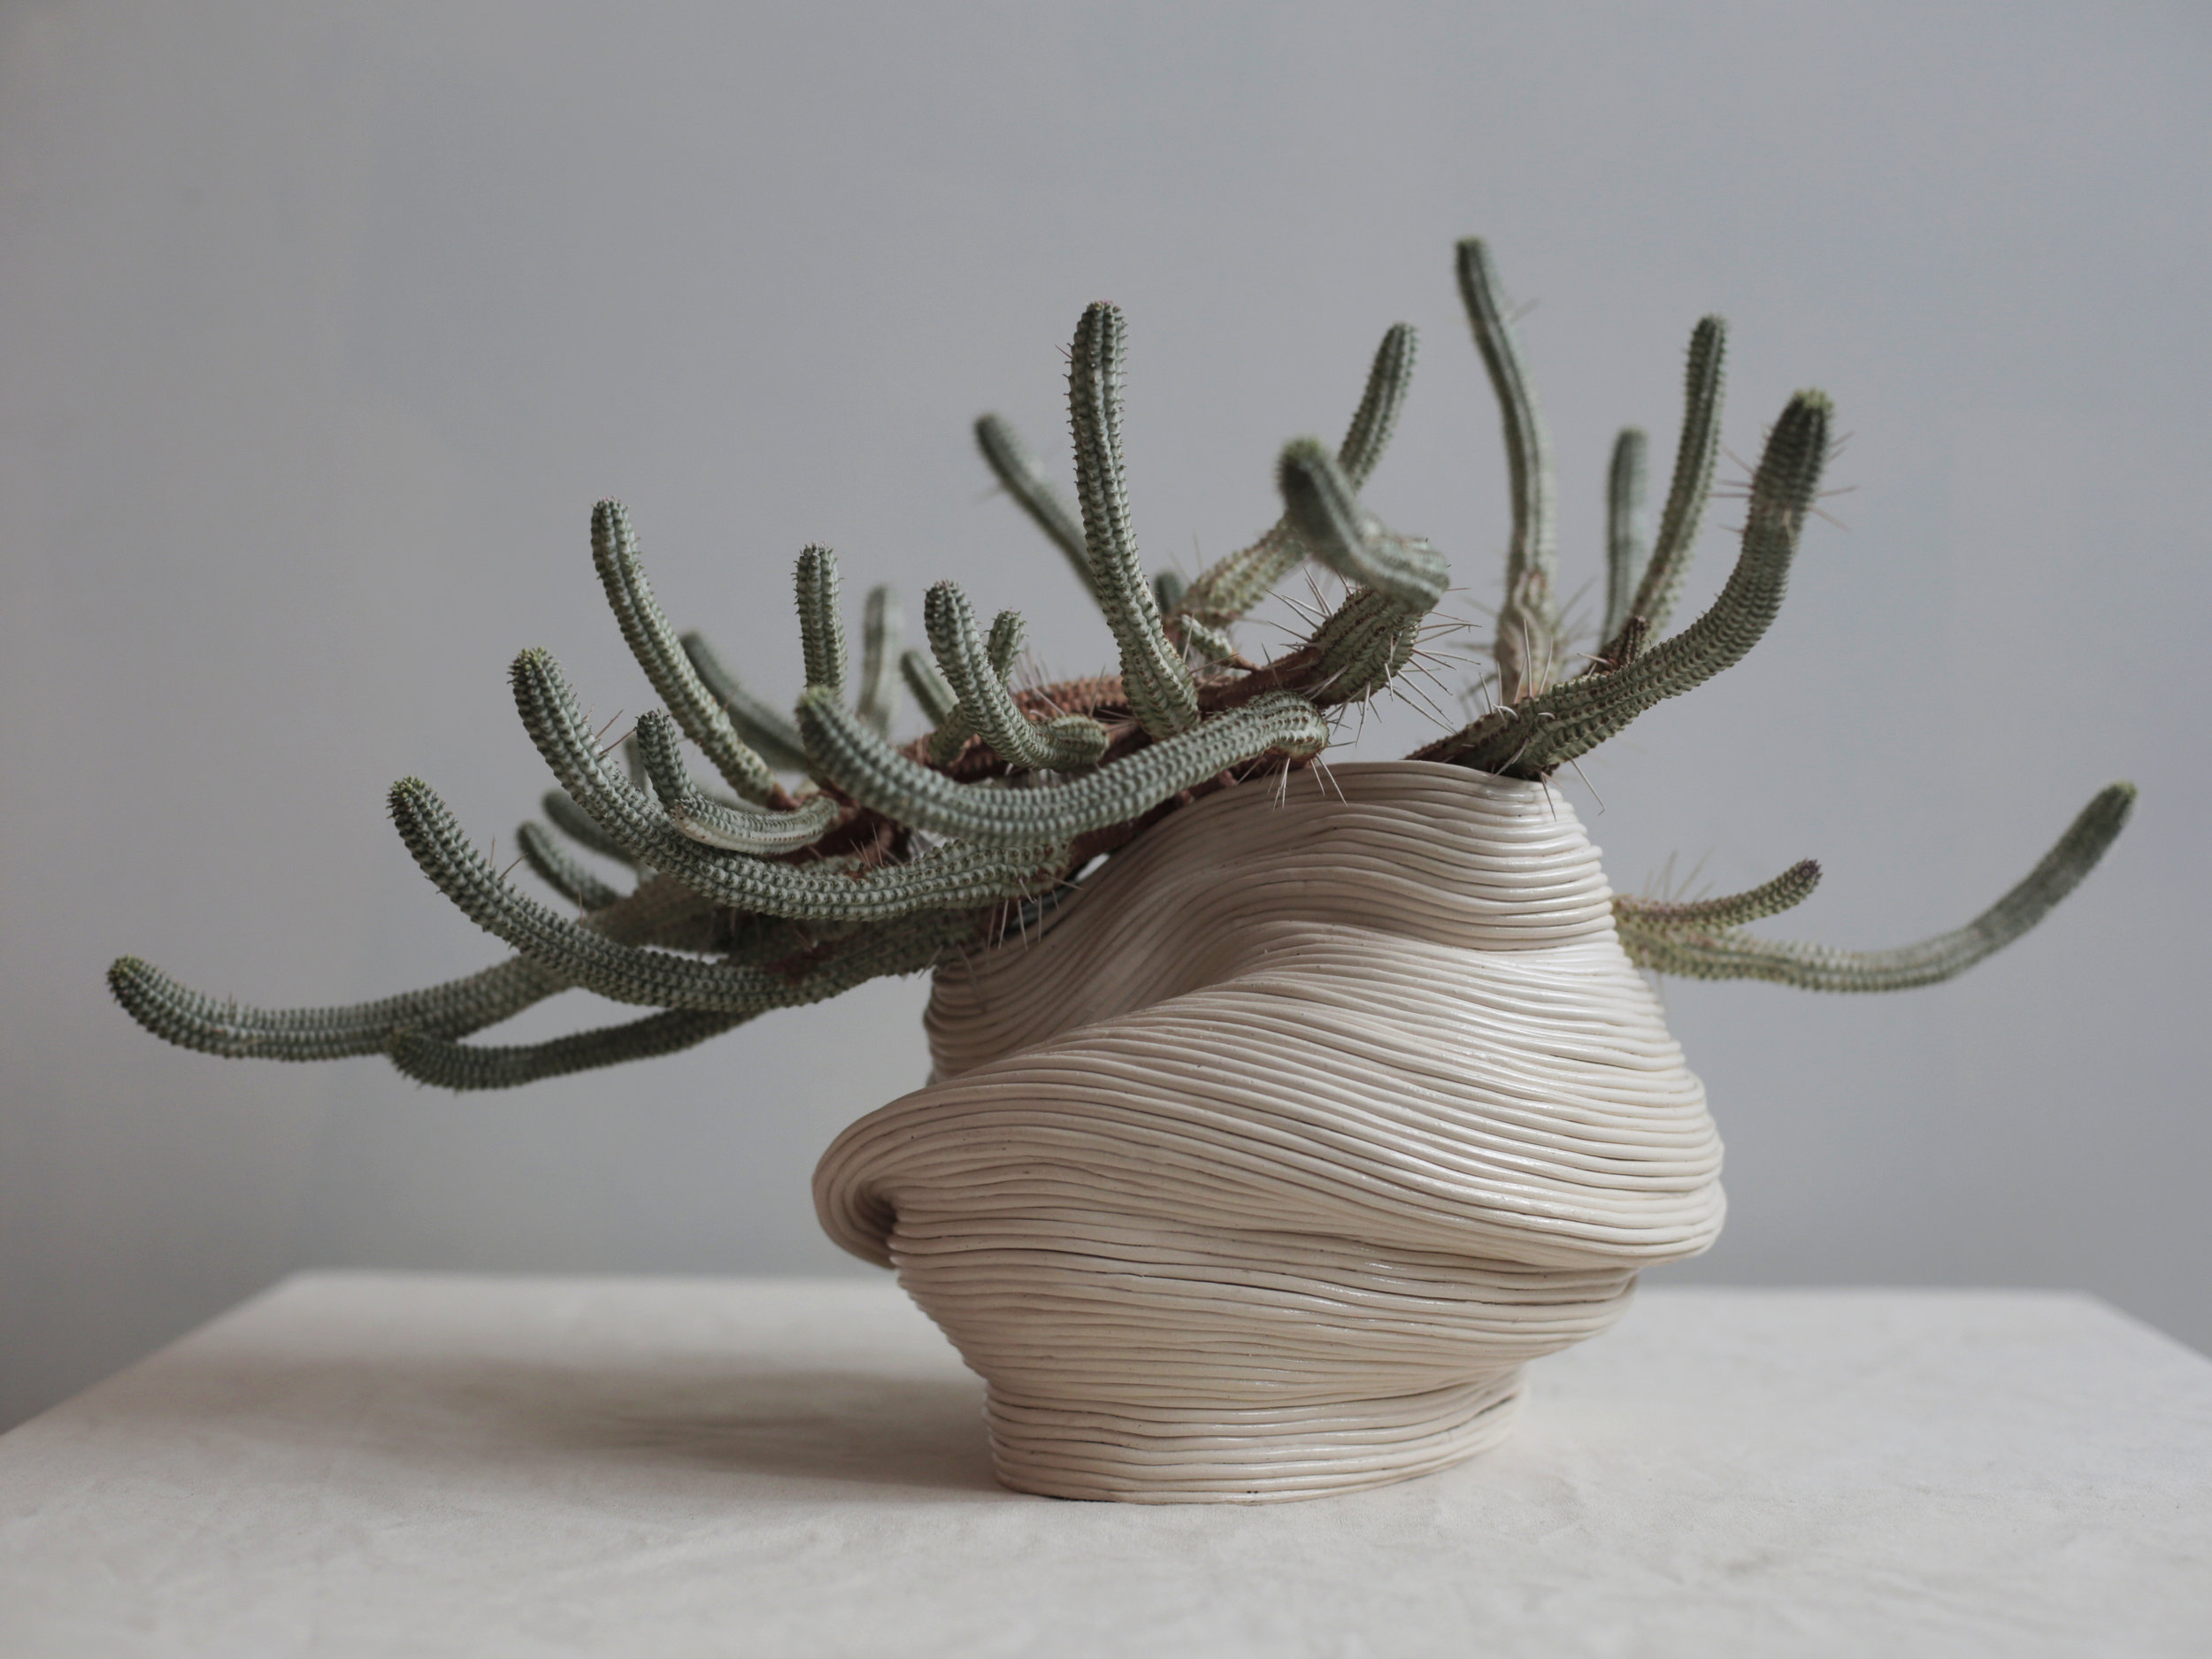 Zhu Ohmu,  Vessel With Outstretched Arms,  2016, ceramic and plant. Photo courtesy the artist